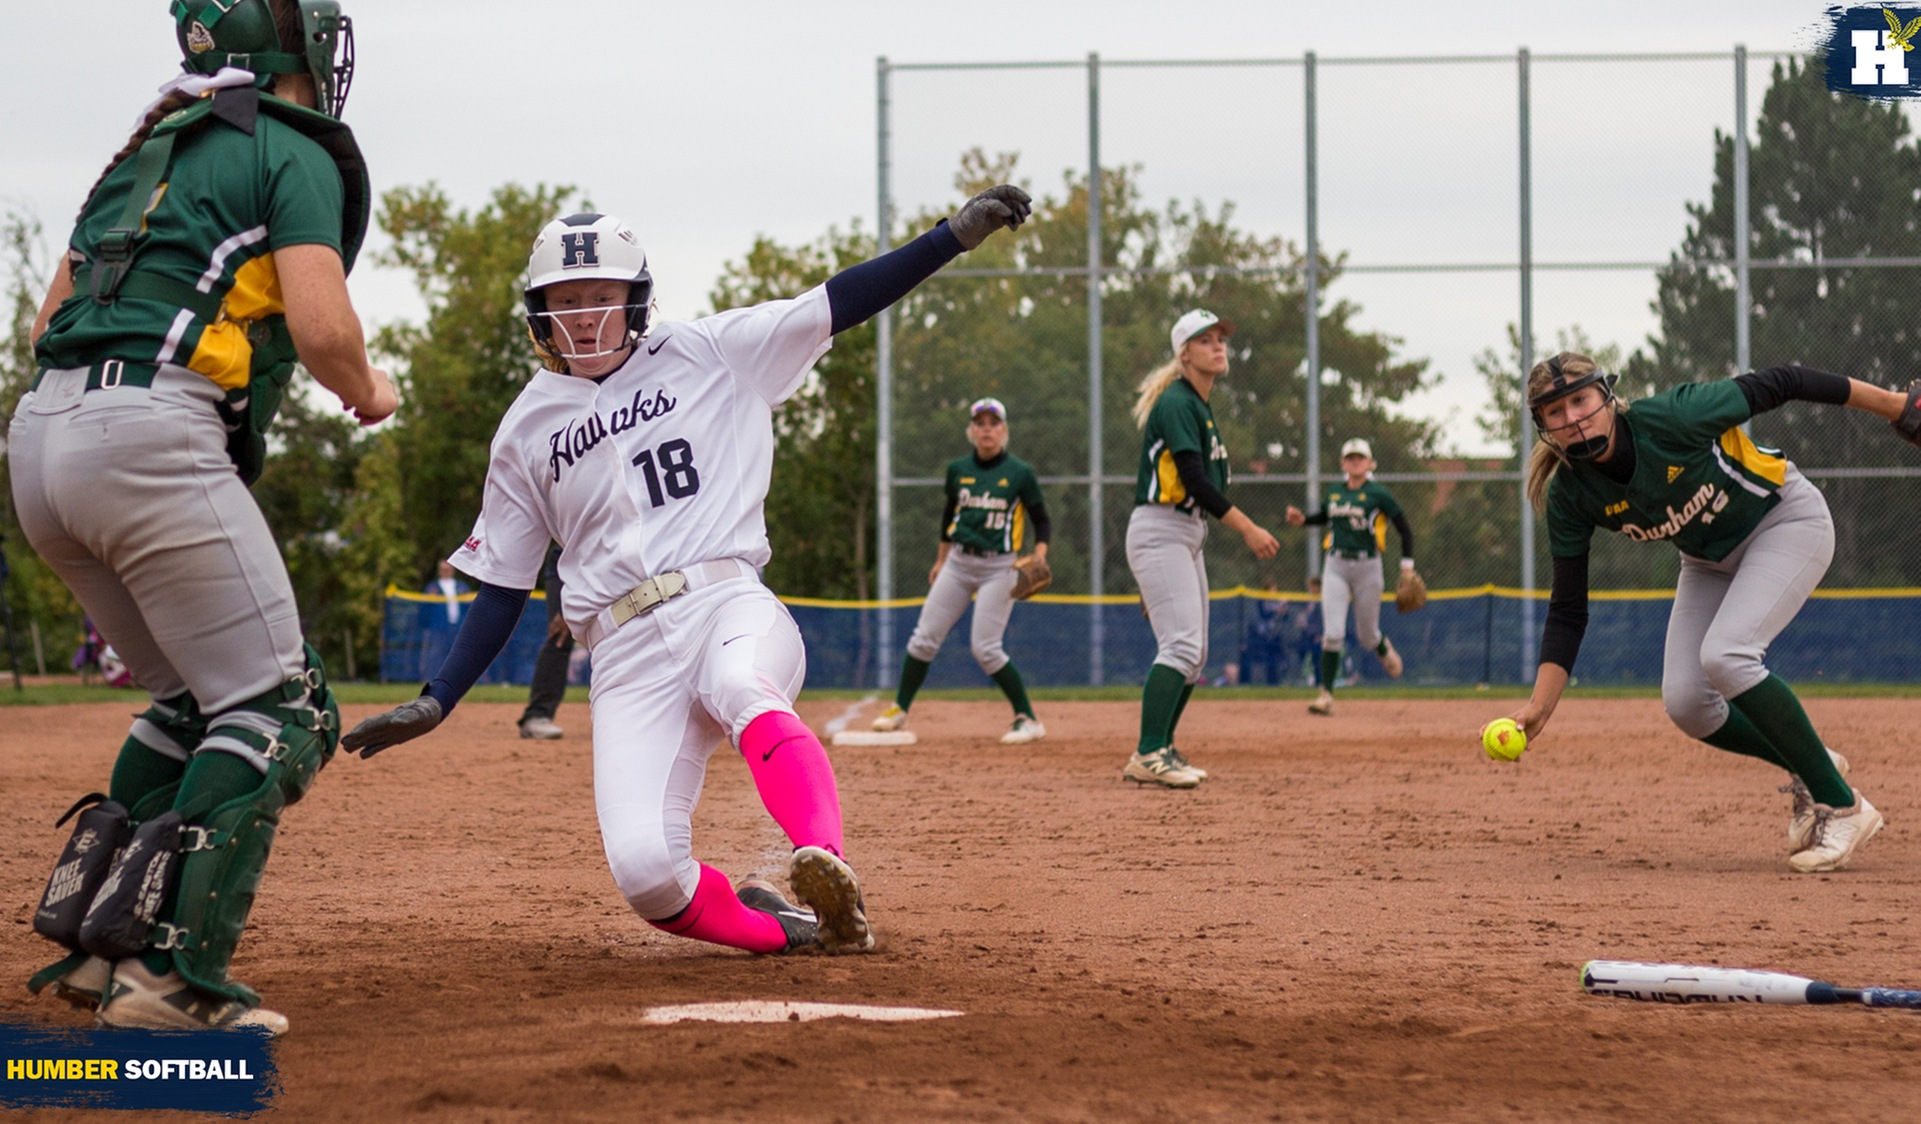 SOFTBALL WALKS-OFF DURHAM TO SPLIT DOUBLEHEADER